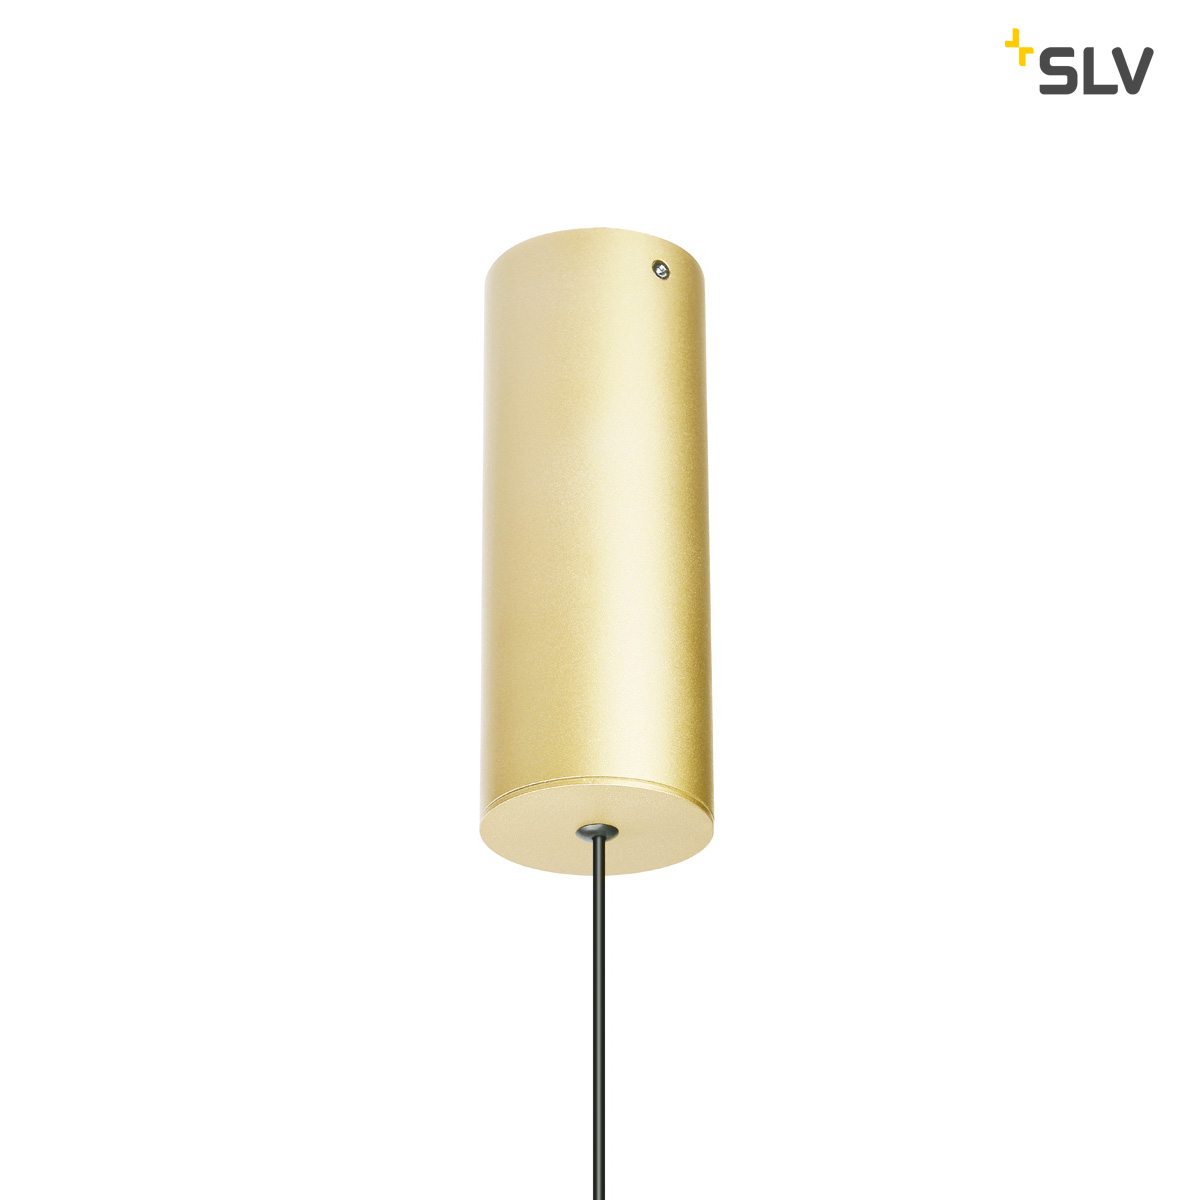 Pendelleuchte Slv Slv 1002172 Helia 30 Pd Led Indoor Pendelleuchte Soft Gold 3000k Aufbauversion